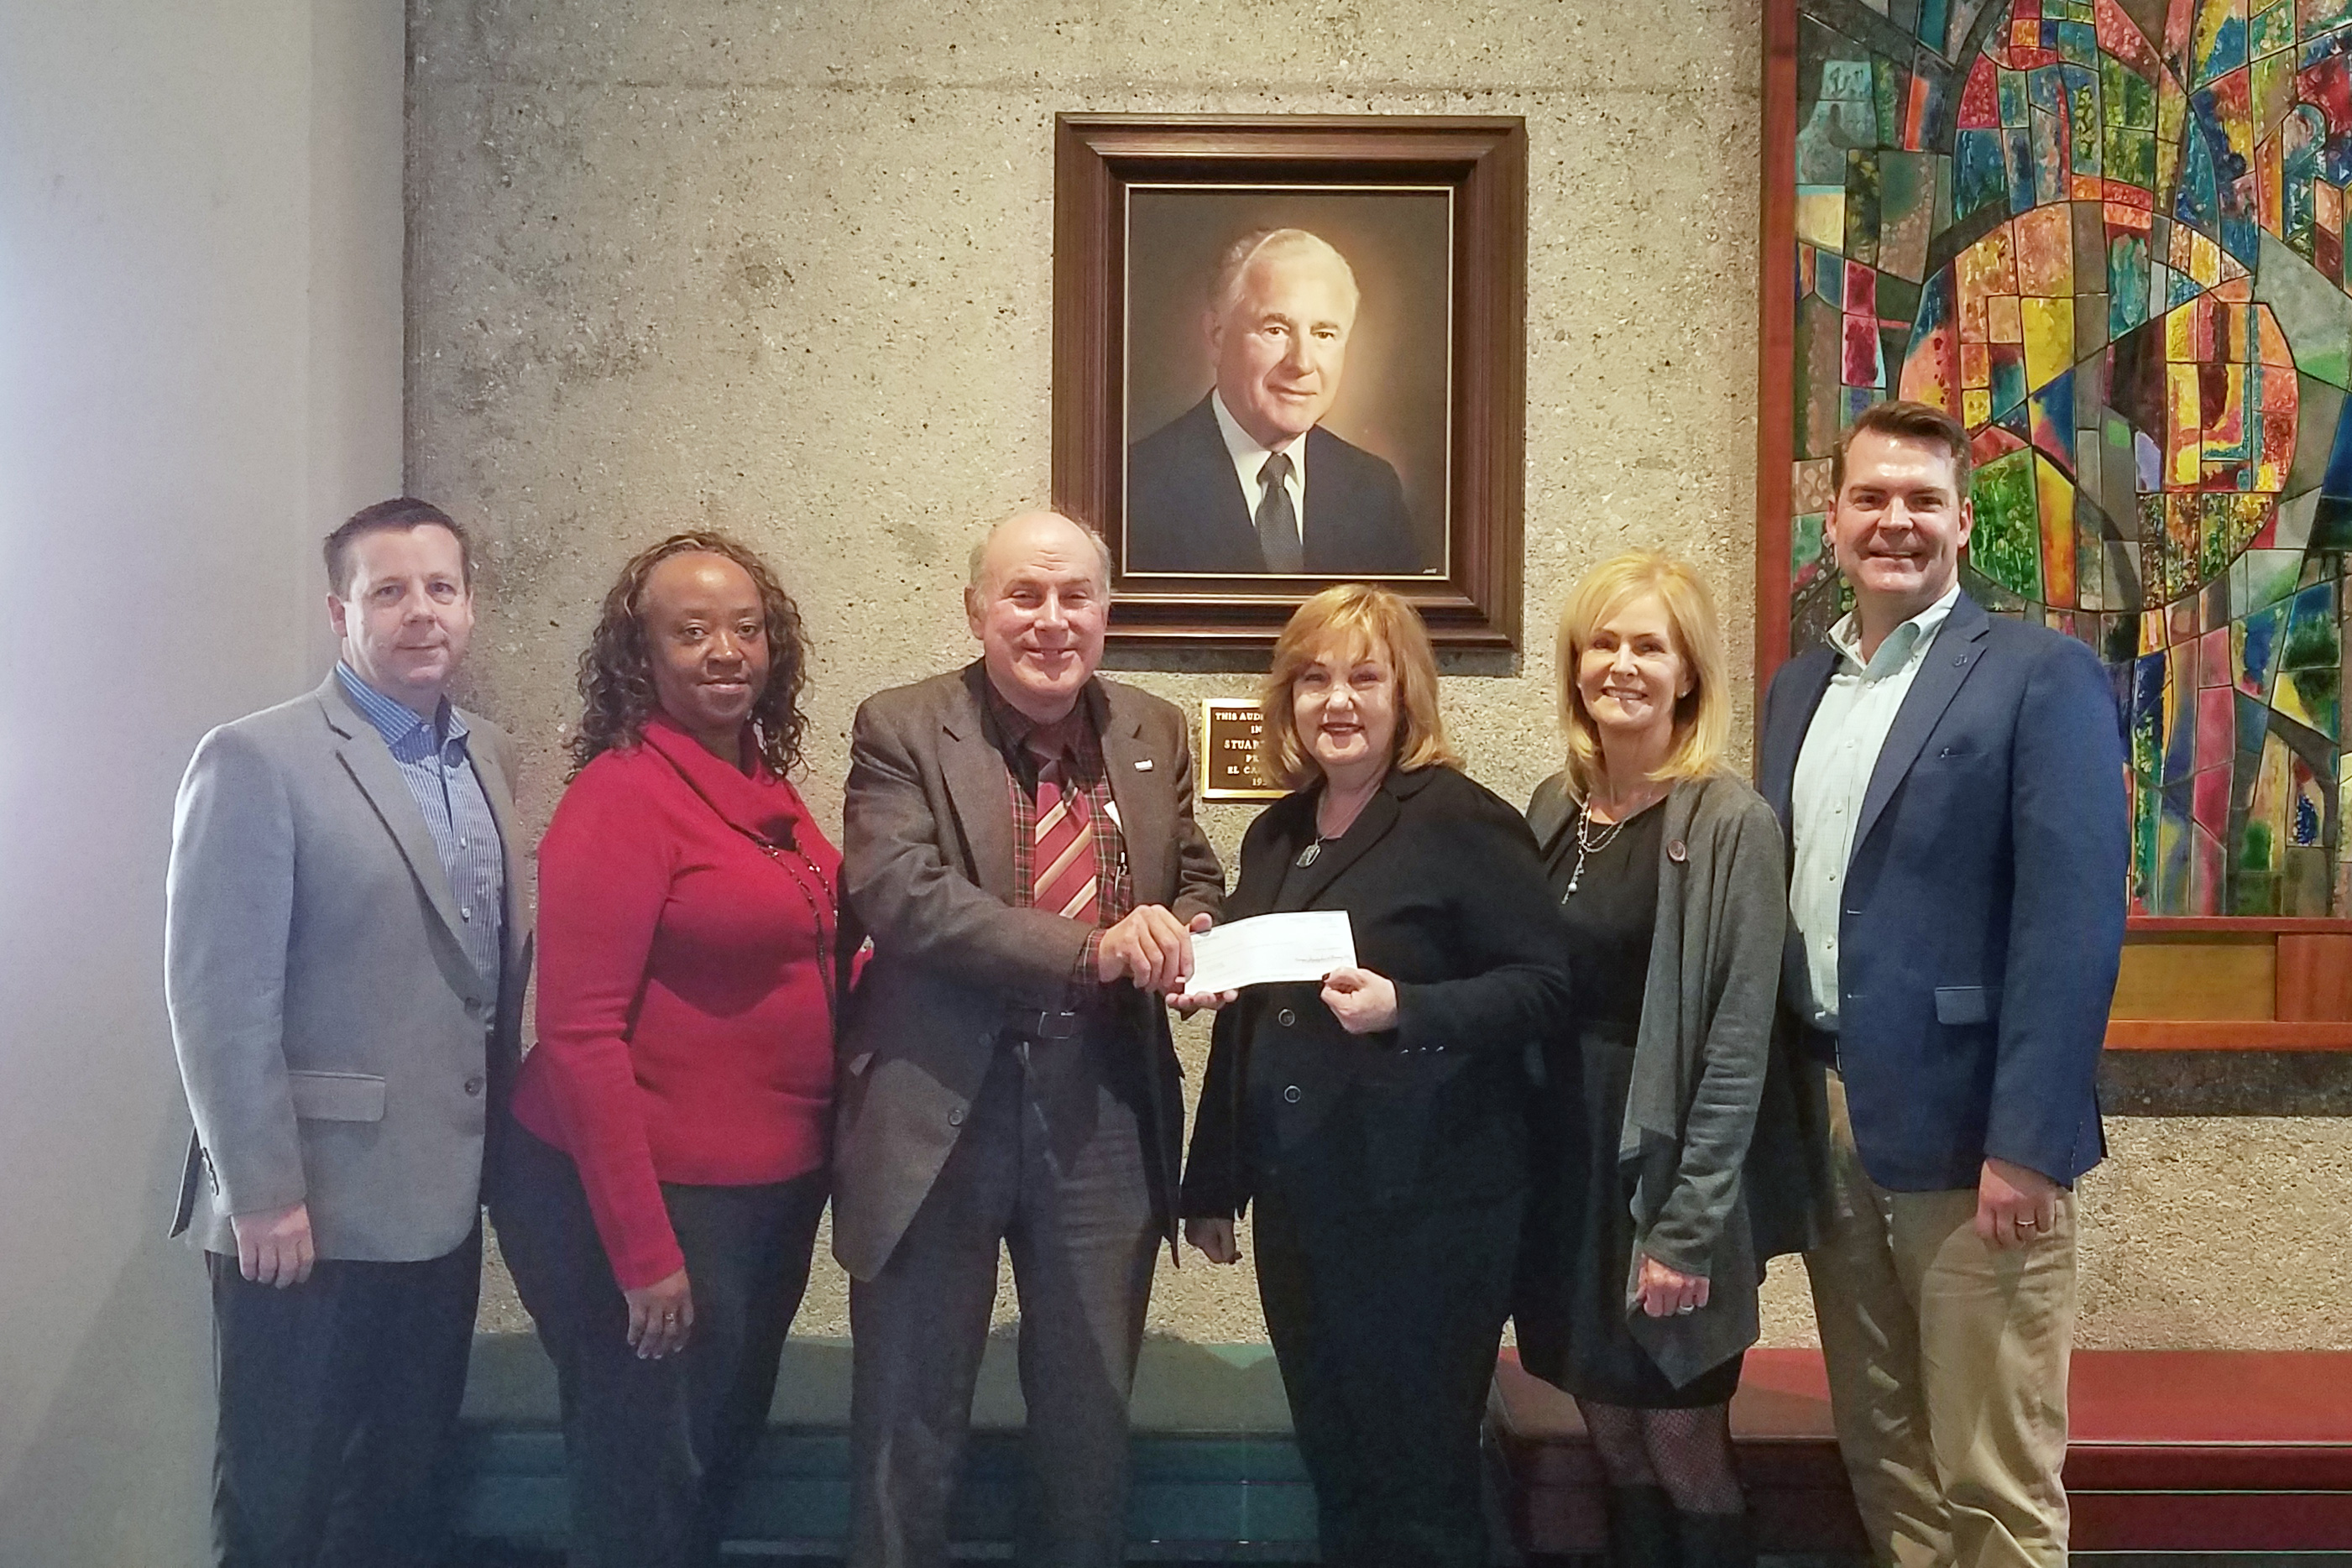 Jim Olds (center) presenting a gift of over $179,000 to El Camino College Superintendent/President Dr. Dena Maloney for the benefit of the El Camino College Center for the Arts. The gift was given from his parents' Charitable Remainder Trust.